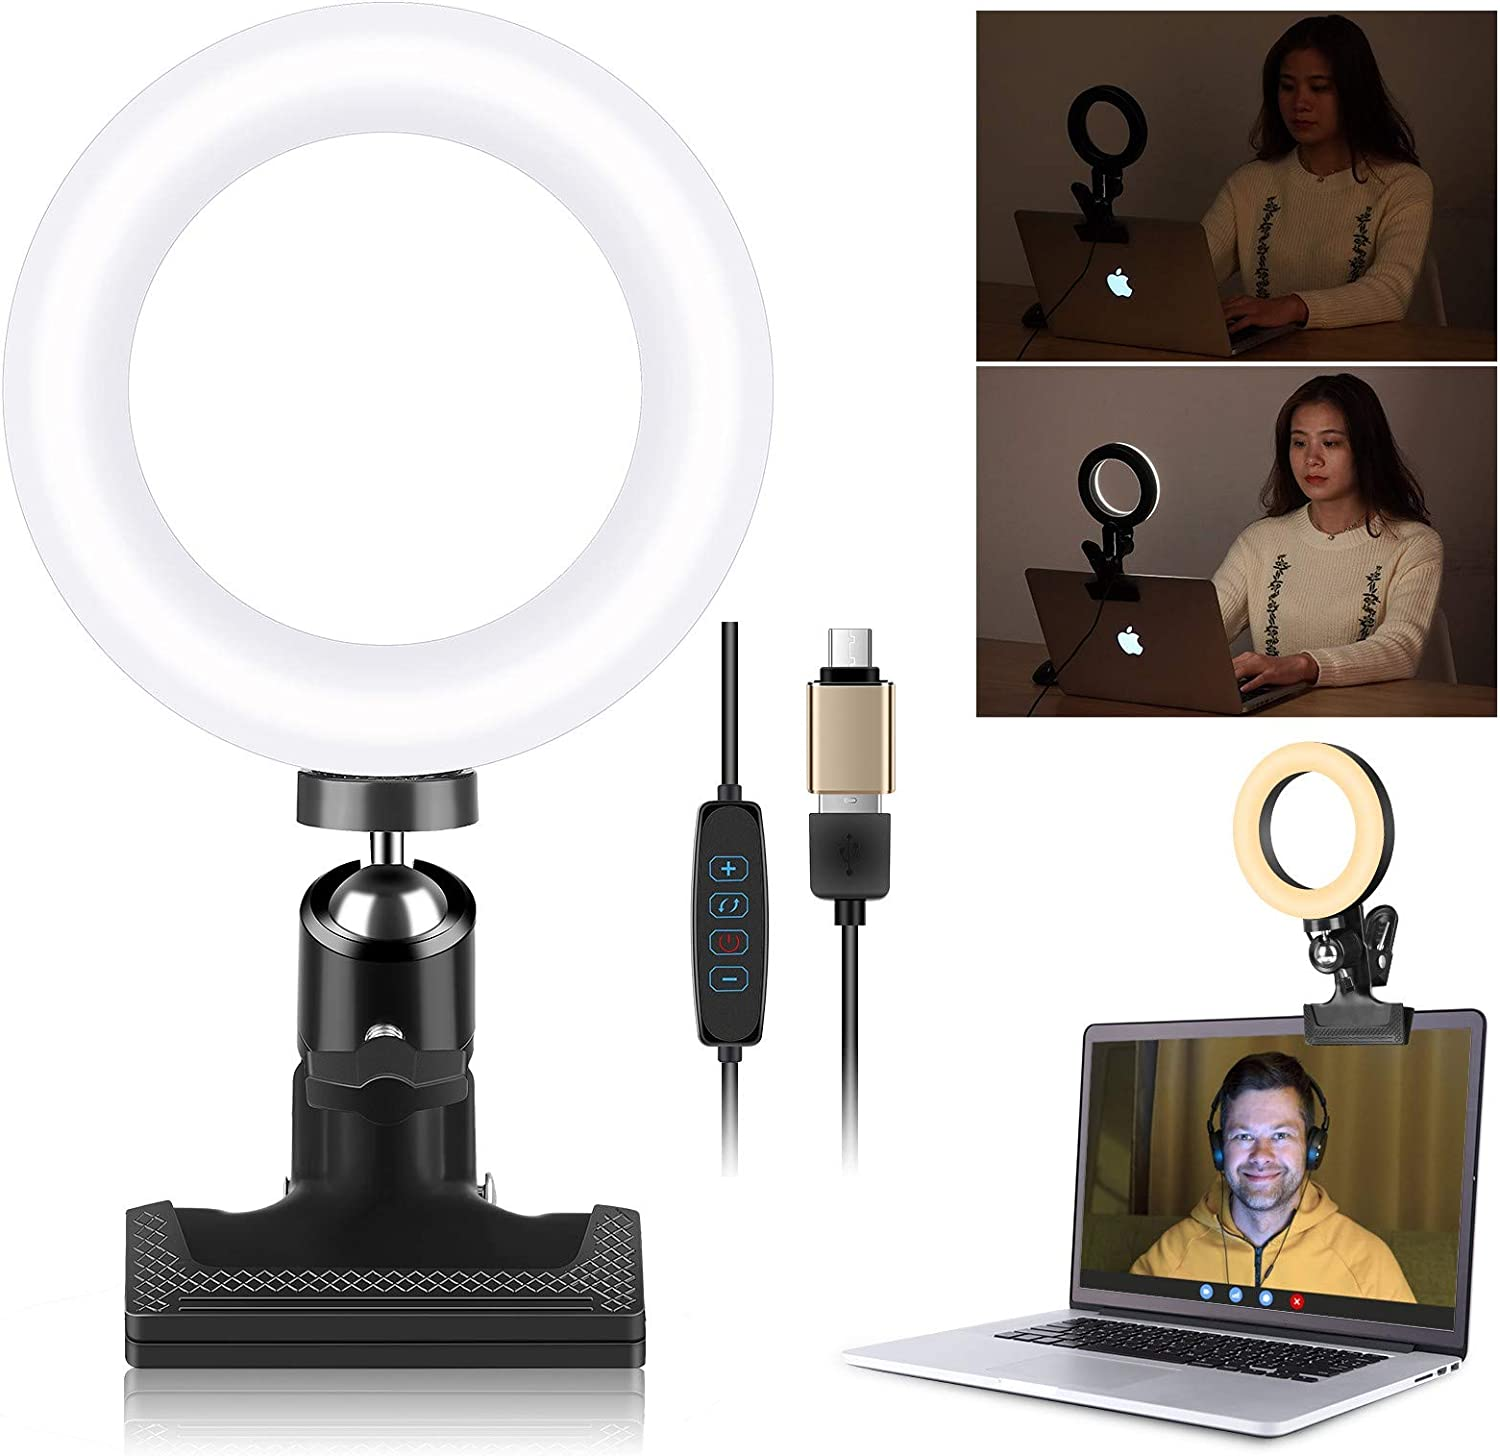 EACHSHOT Video Conference Lighting Kit with Clamp Mount 4.5